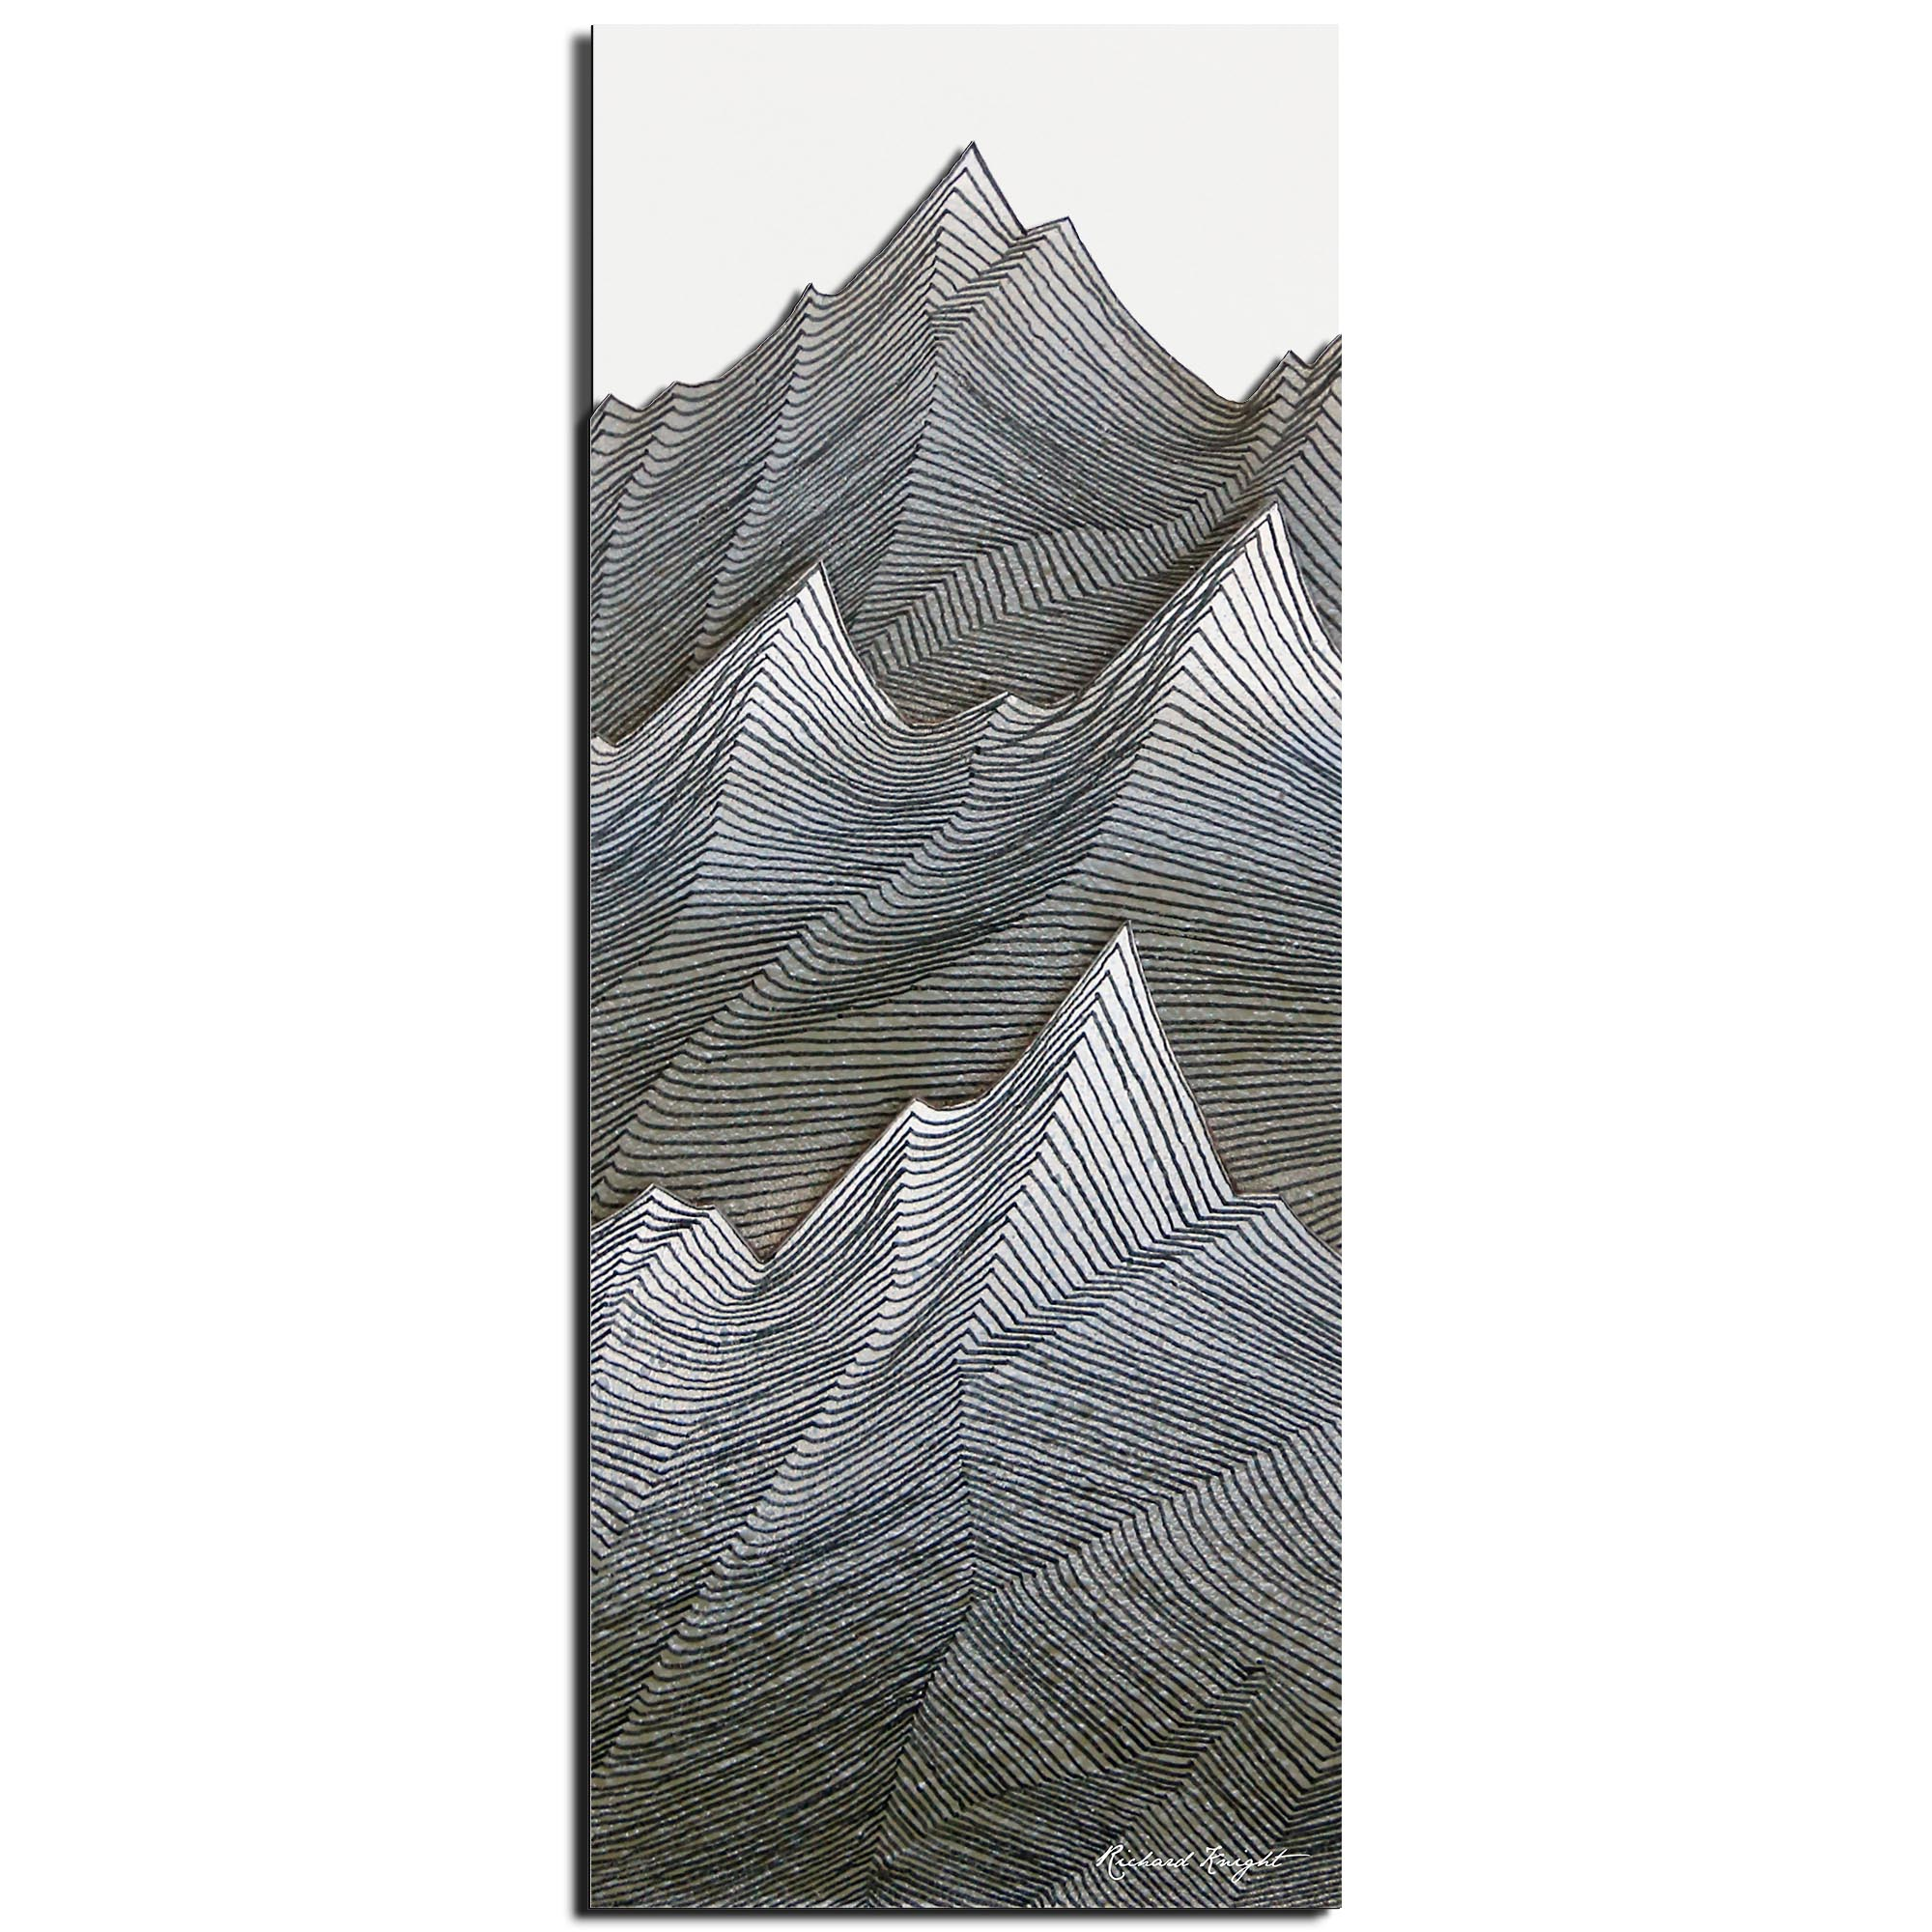 Richard Knight 'Stone Peaks' 19in x 48in Abstract Landscape Art on Polymetal